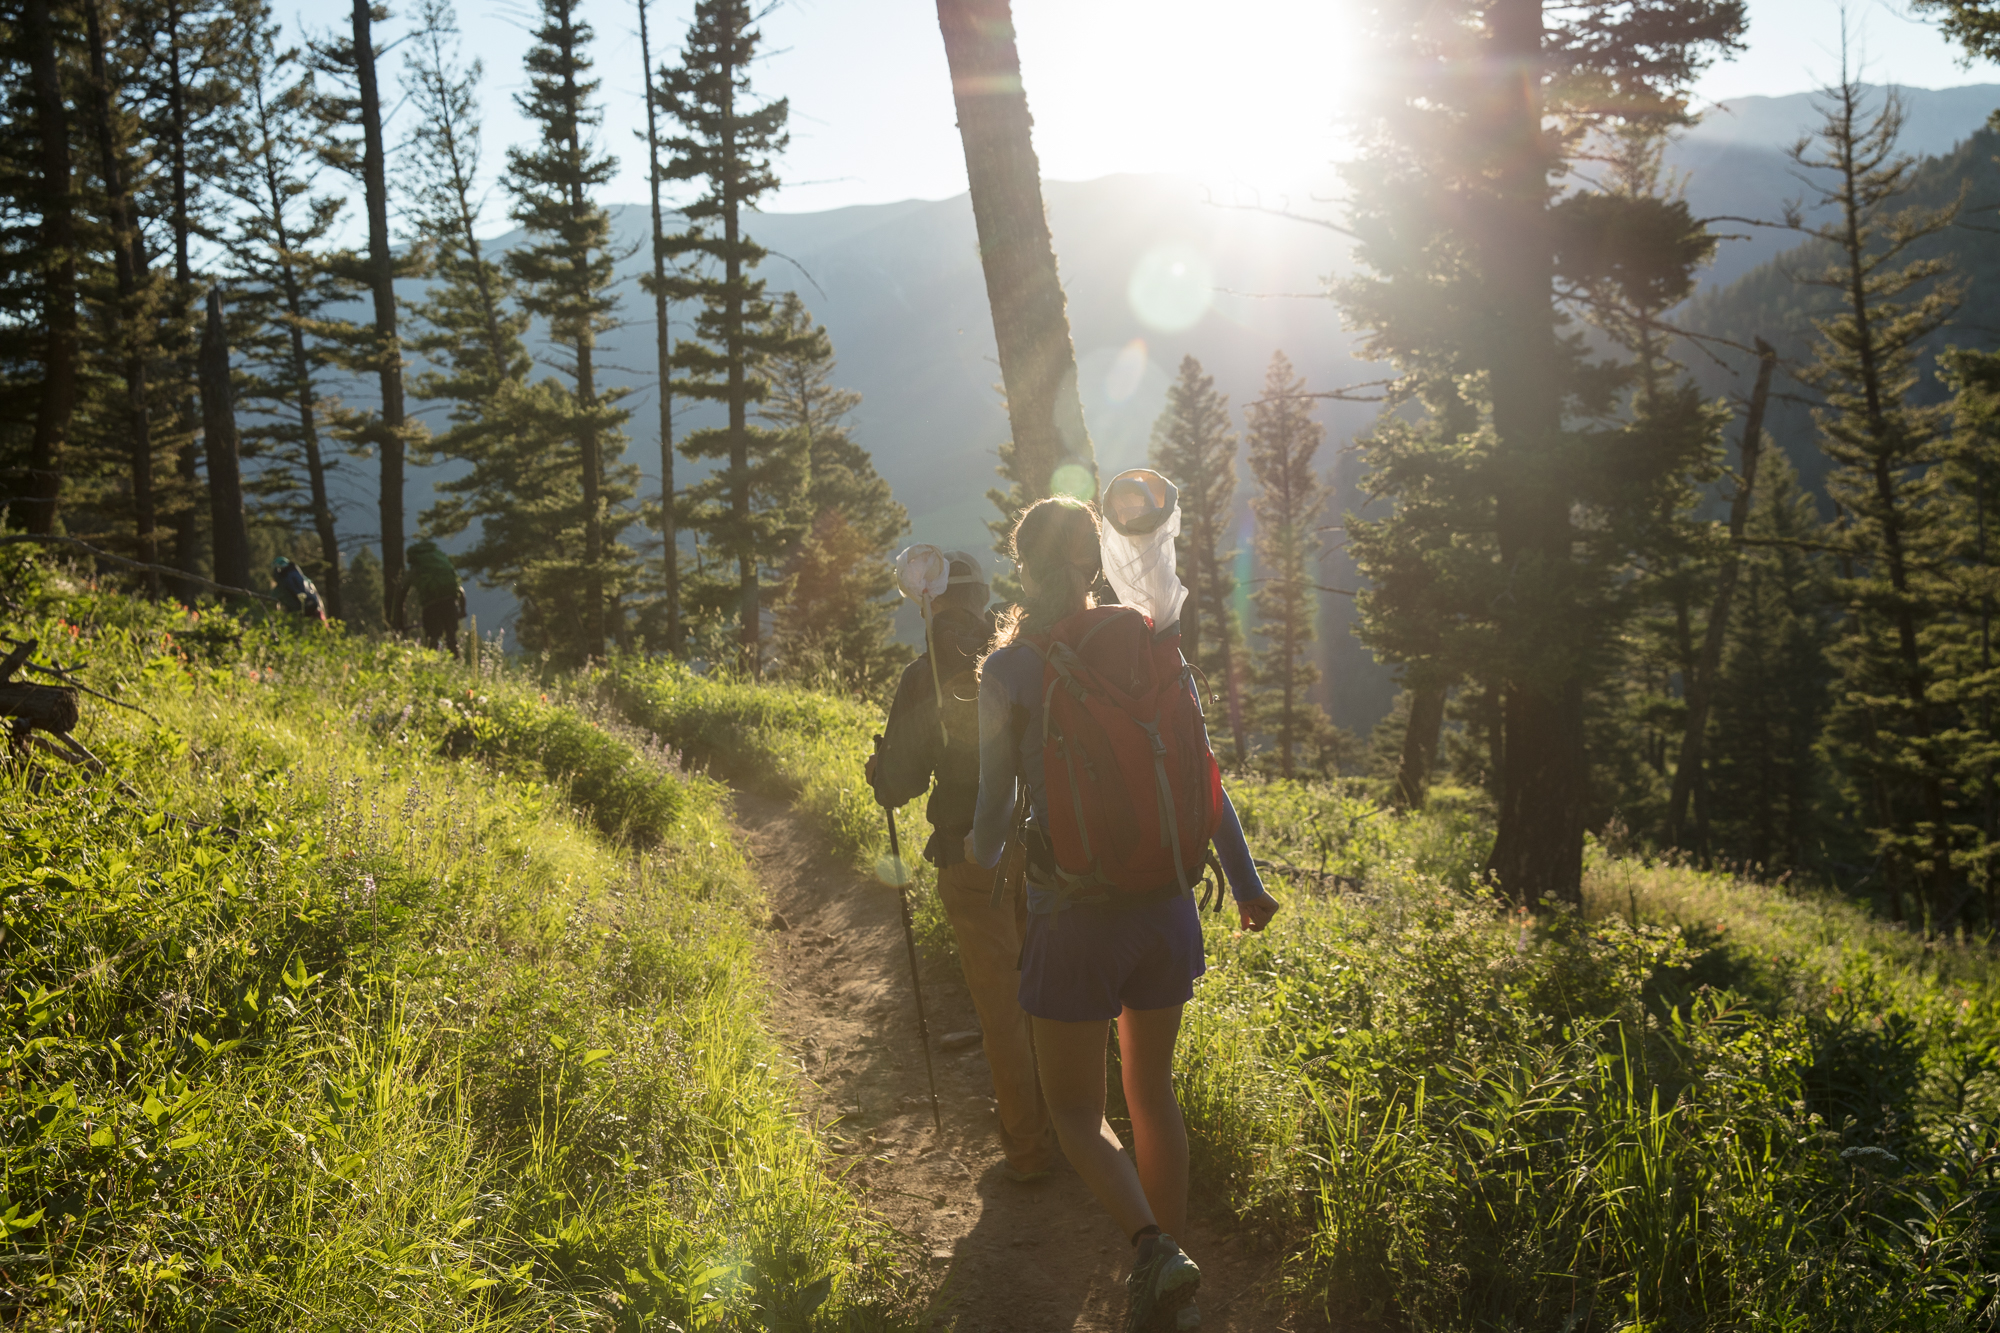 Volunteer citizen scientists hike out to observe butterflies